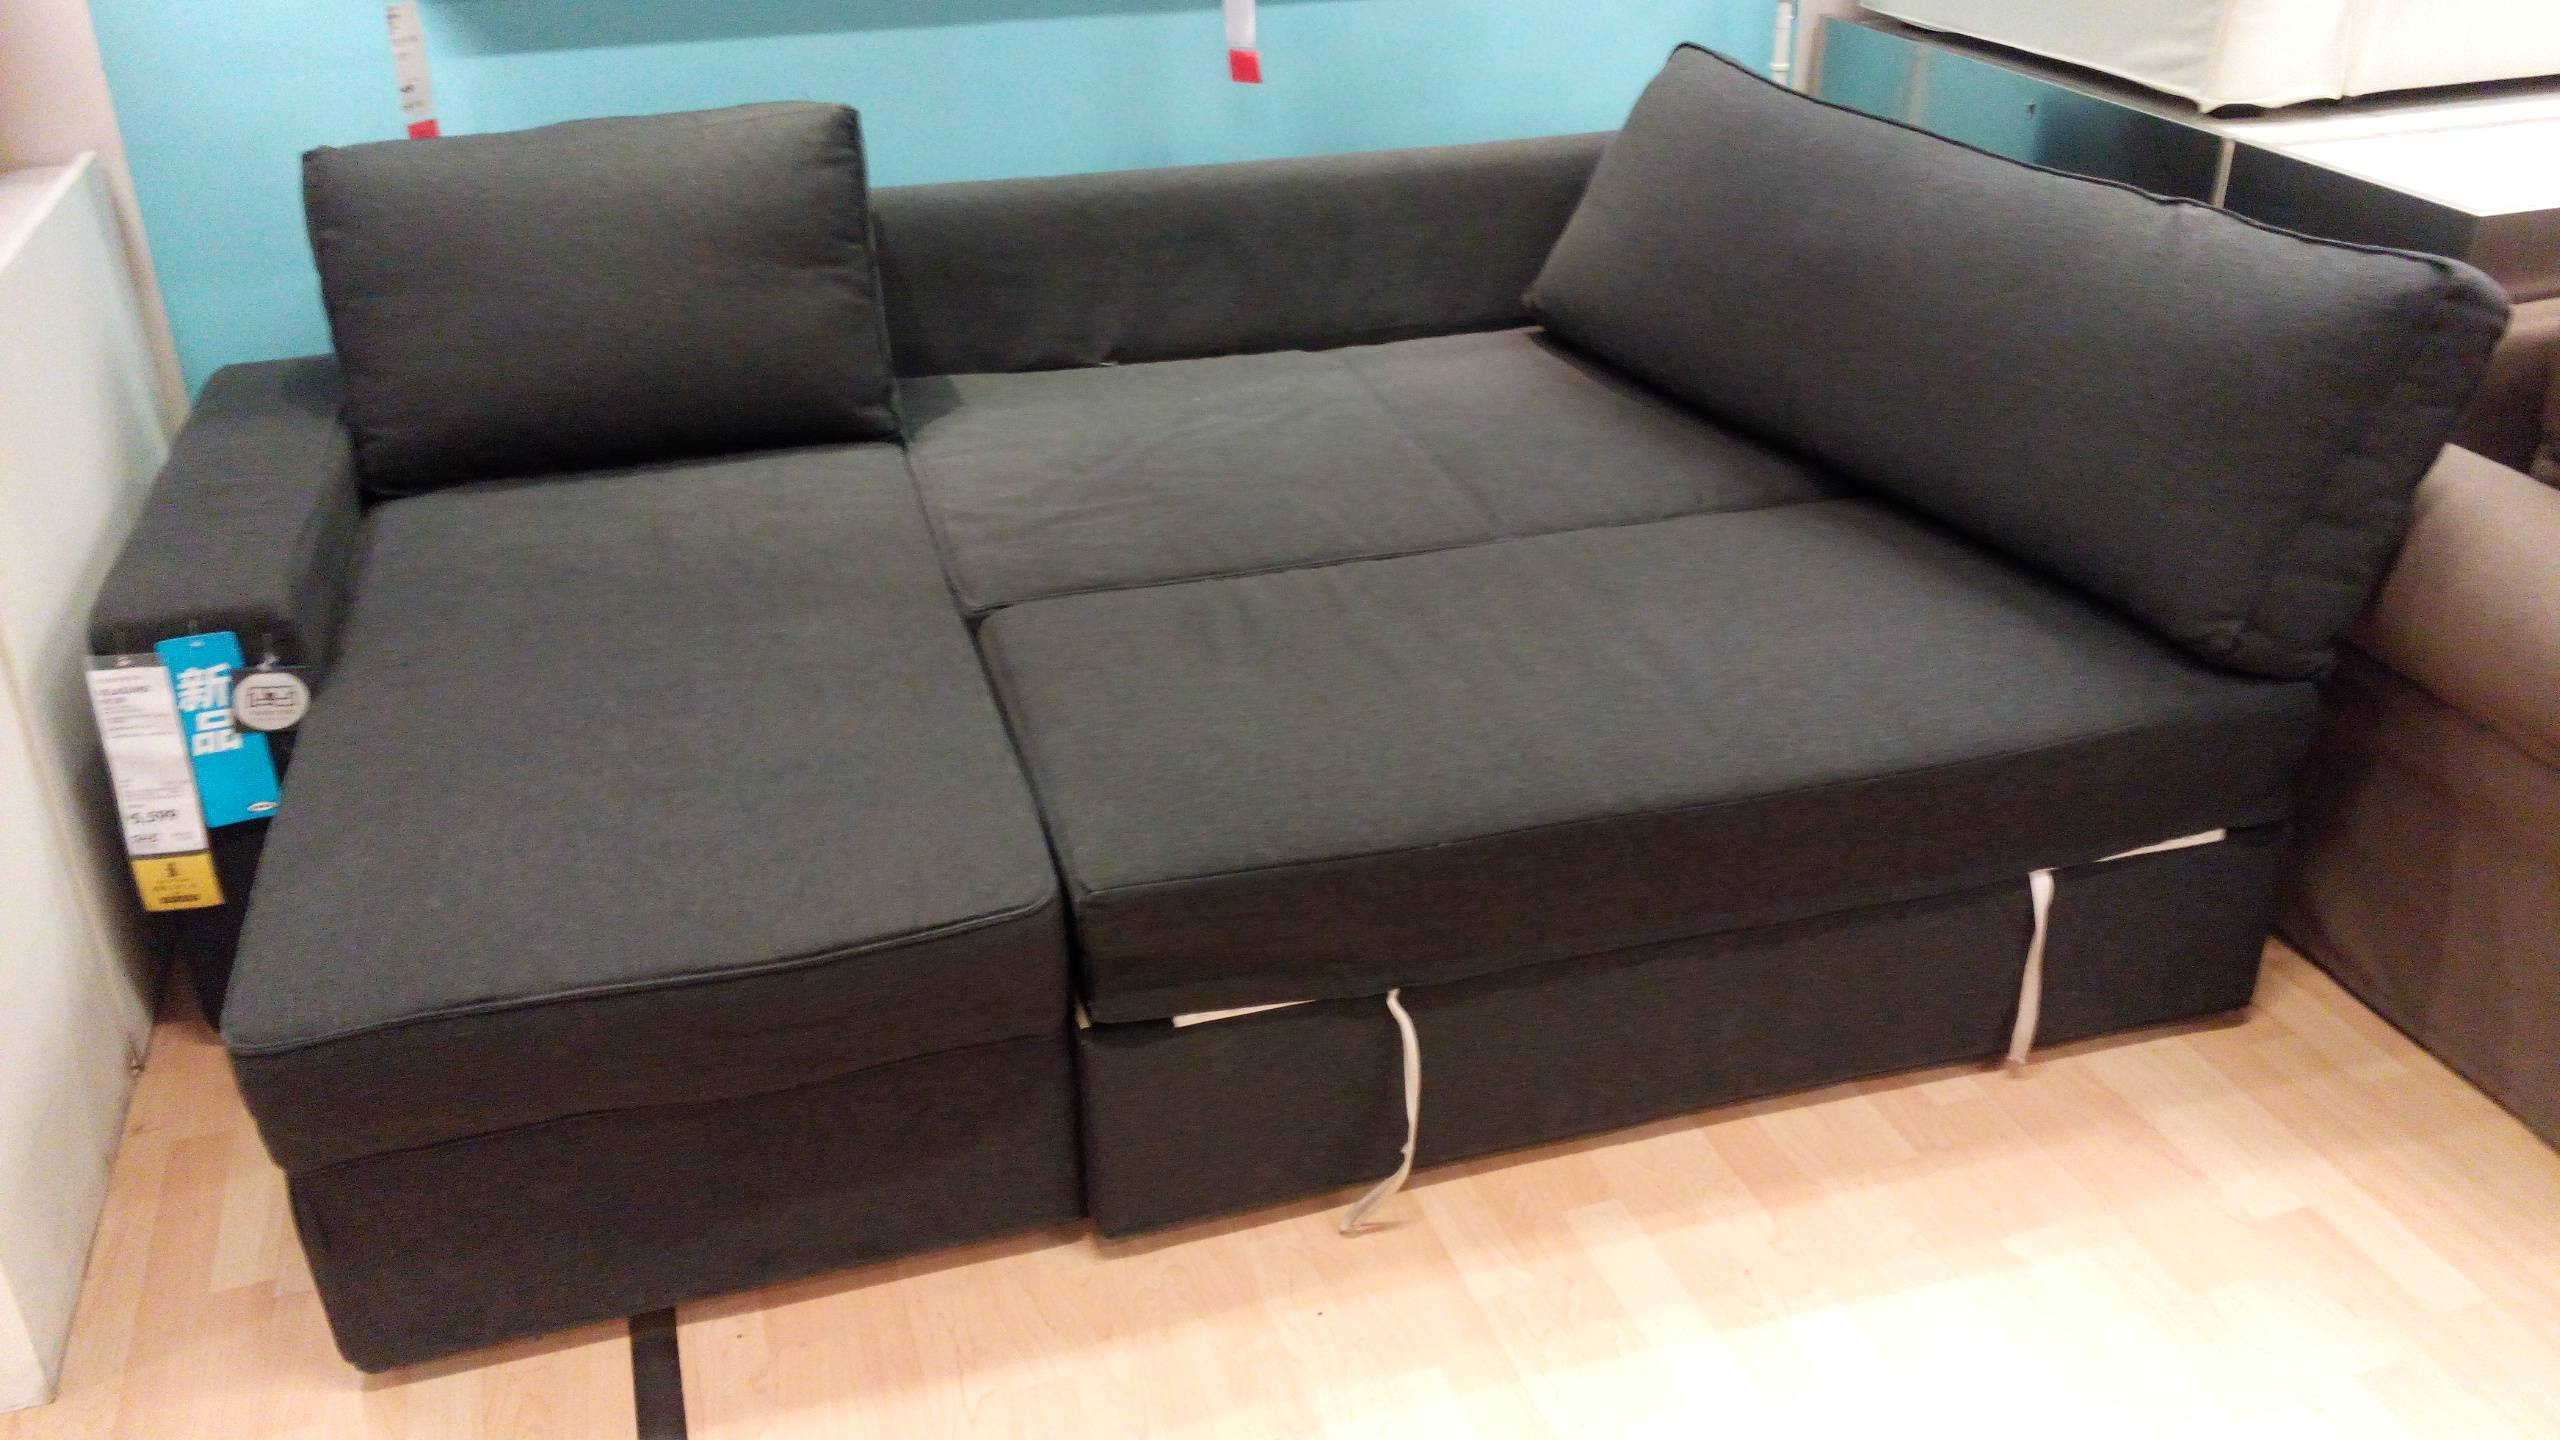 Furniture: Luxury Sofa Bed Ikea For Home Furniture Ideas — Nysben throughout Ikea Storage Sofa Bed (Image 15 of 25)